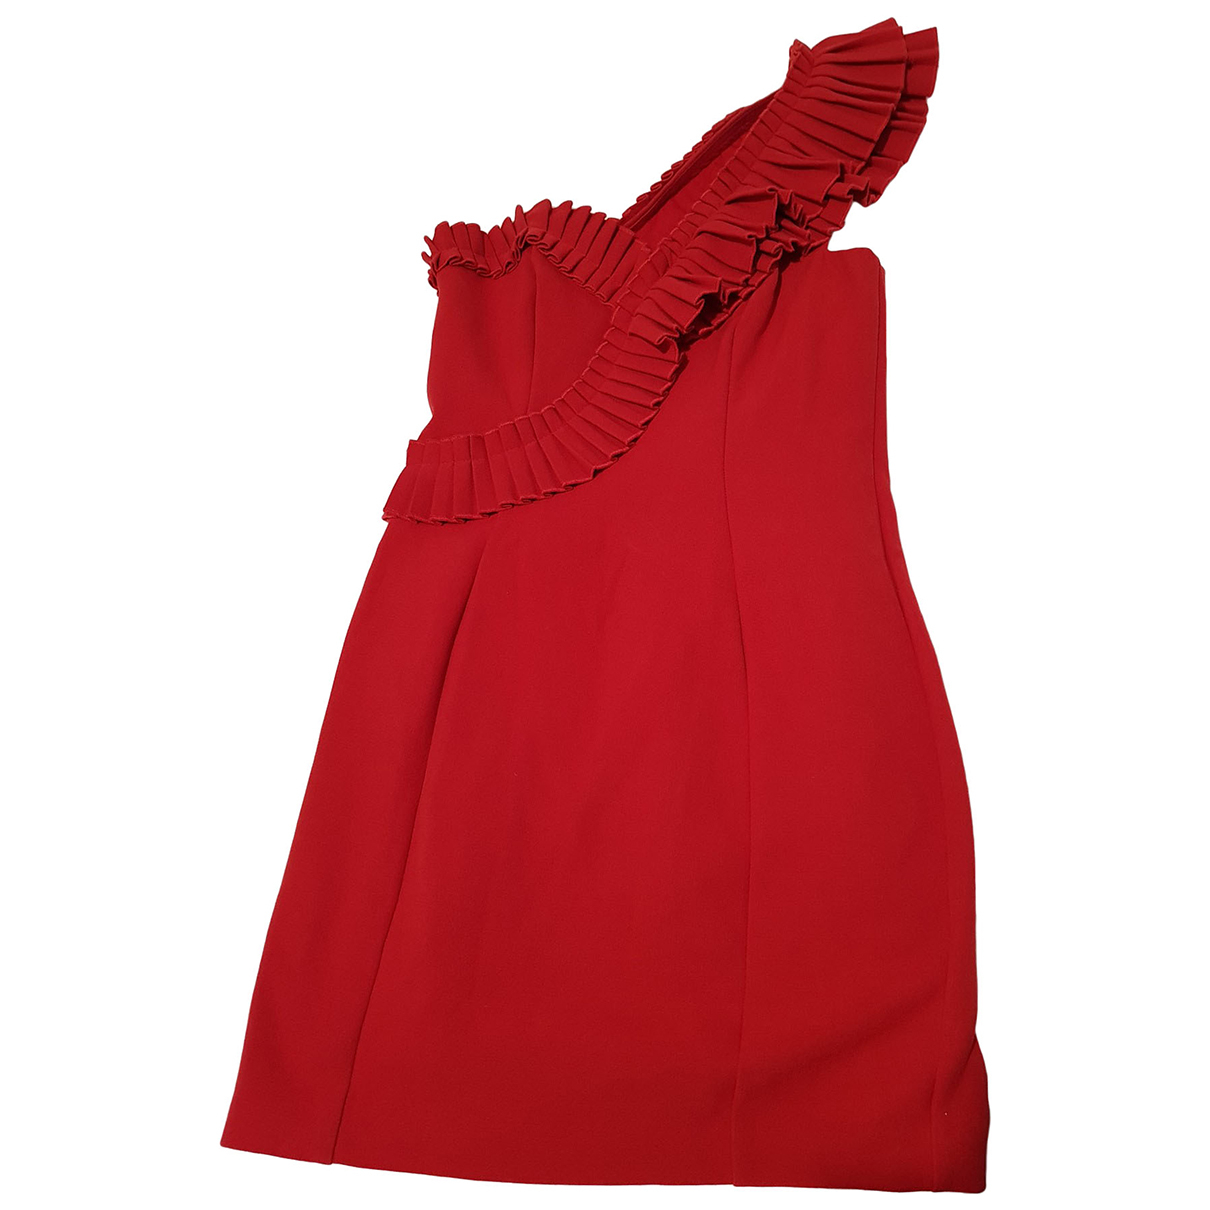 River Island \N Kleid in  Rot Polyester